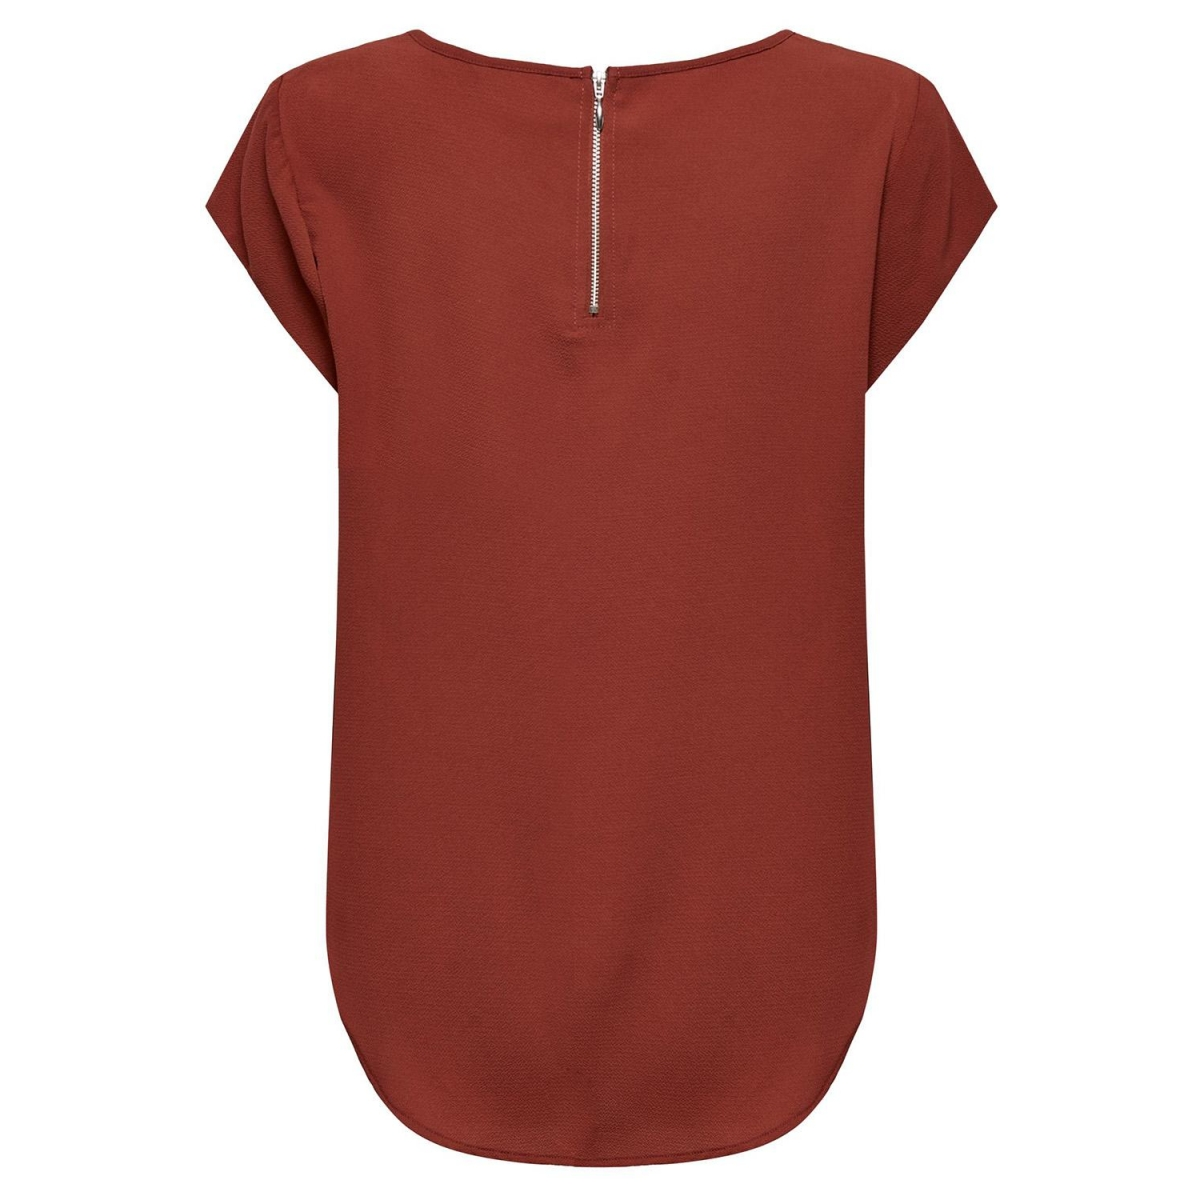 onlvic s/s solid top noos wvn 15142784 only t-shirt henna